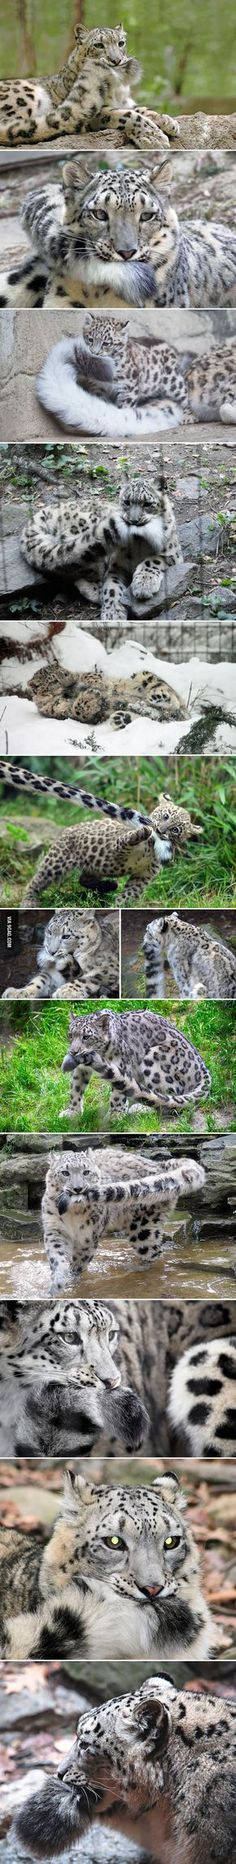 If you are having a bad day, just look at these pictures of snow leopards nomming on their fluffy tails!